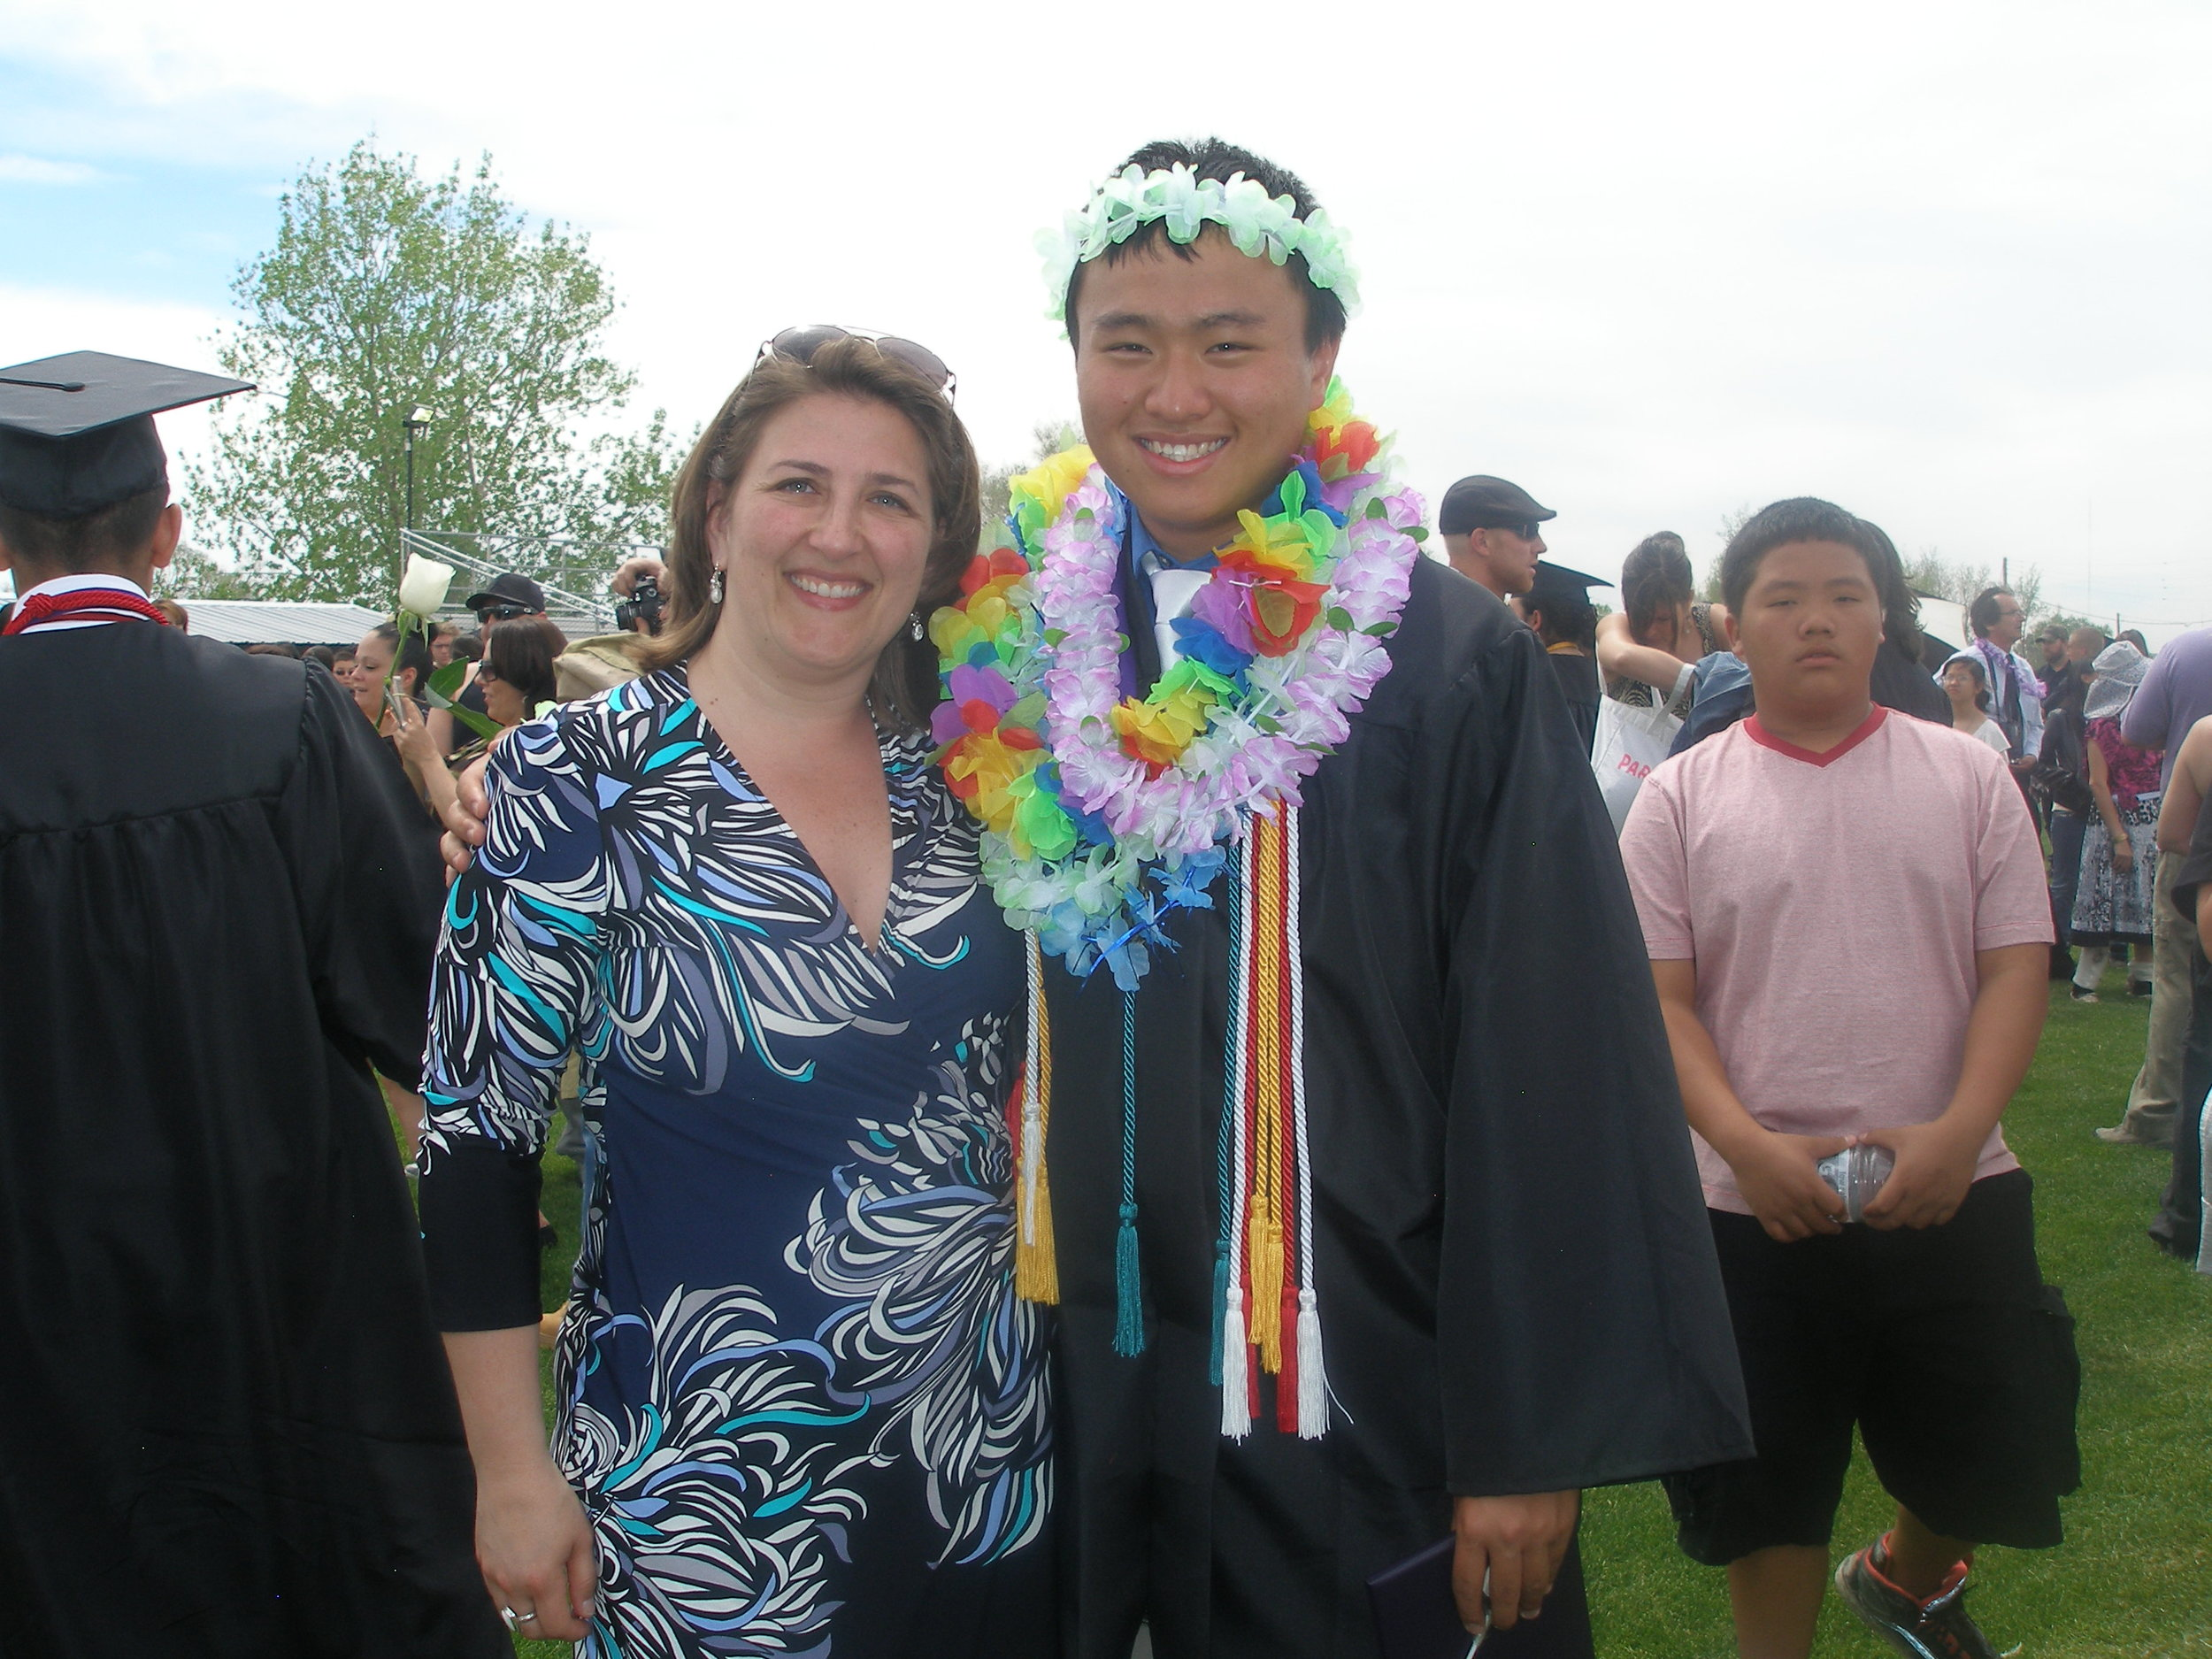 With former student - who's gotten tall! - on graduation day